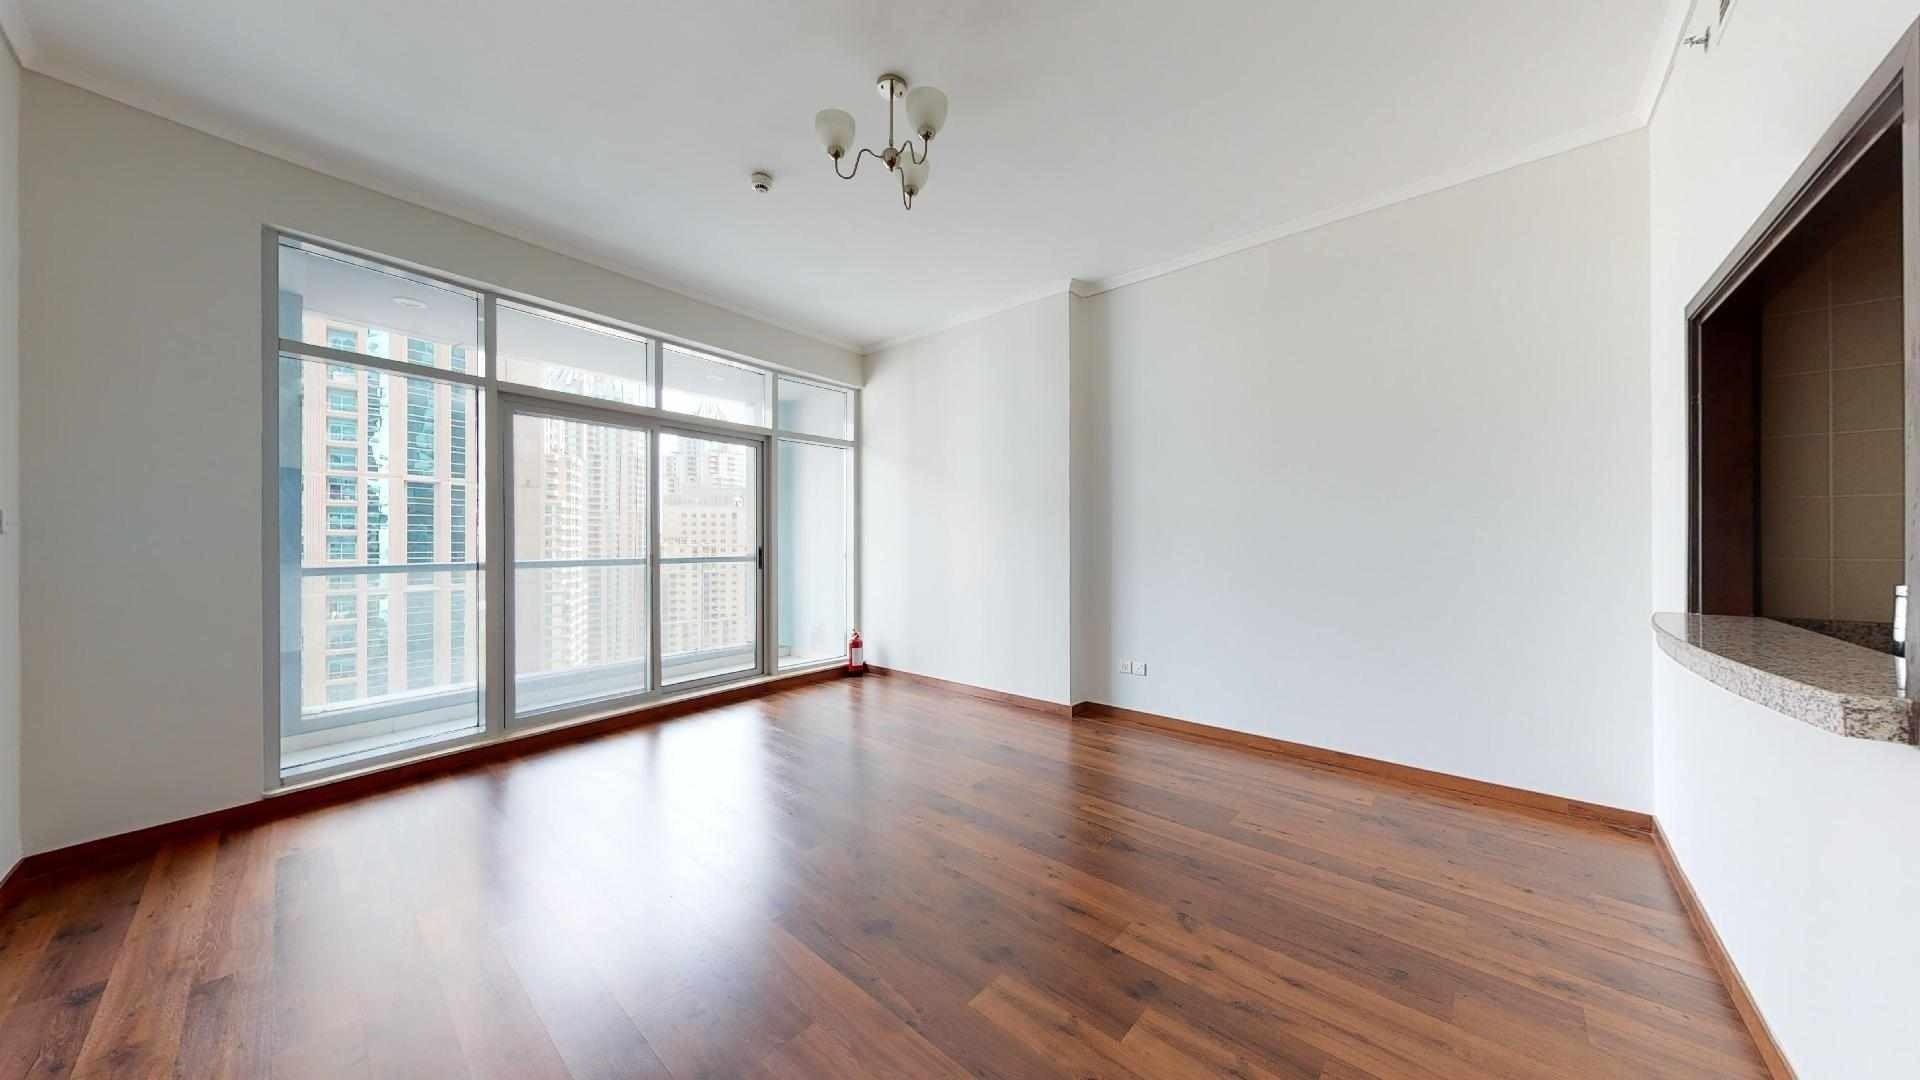 Wooden floors | High floor | Visit with your phone